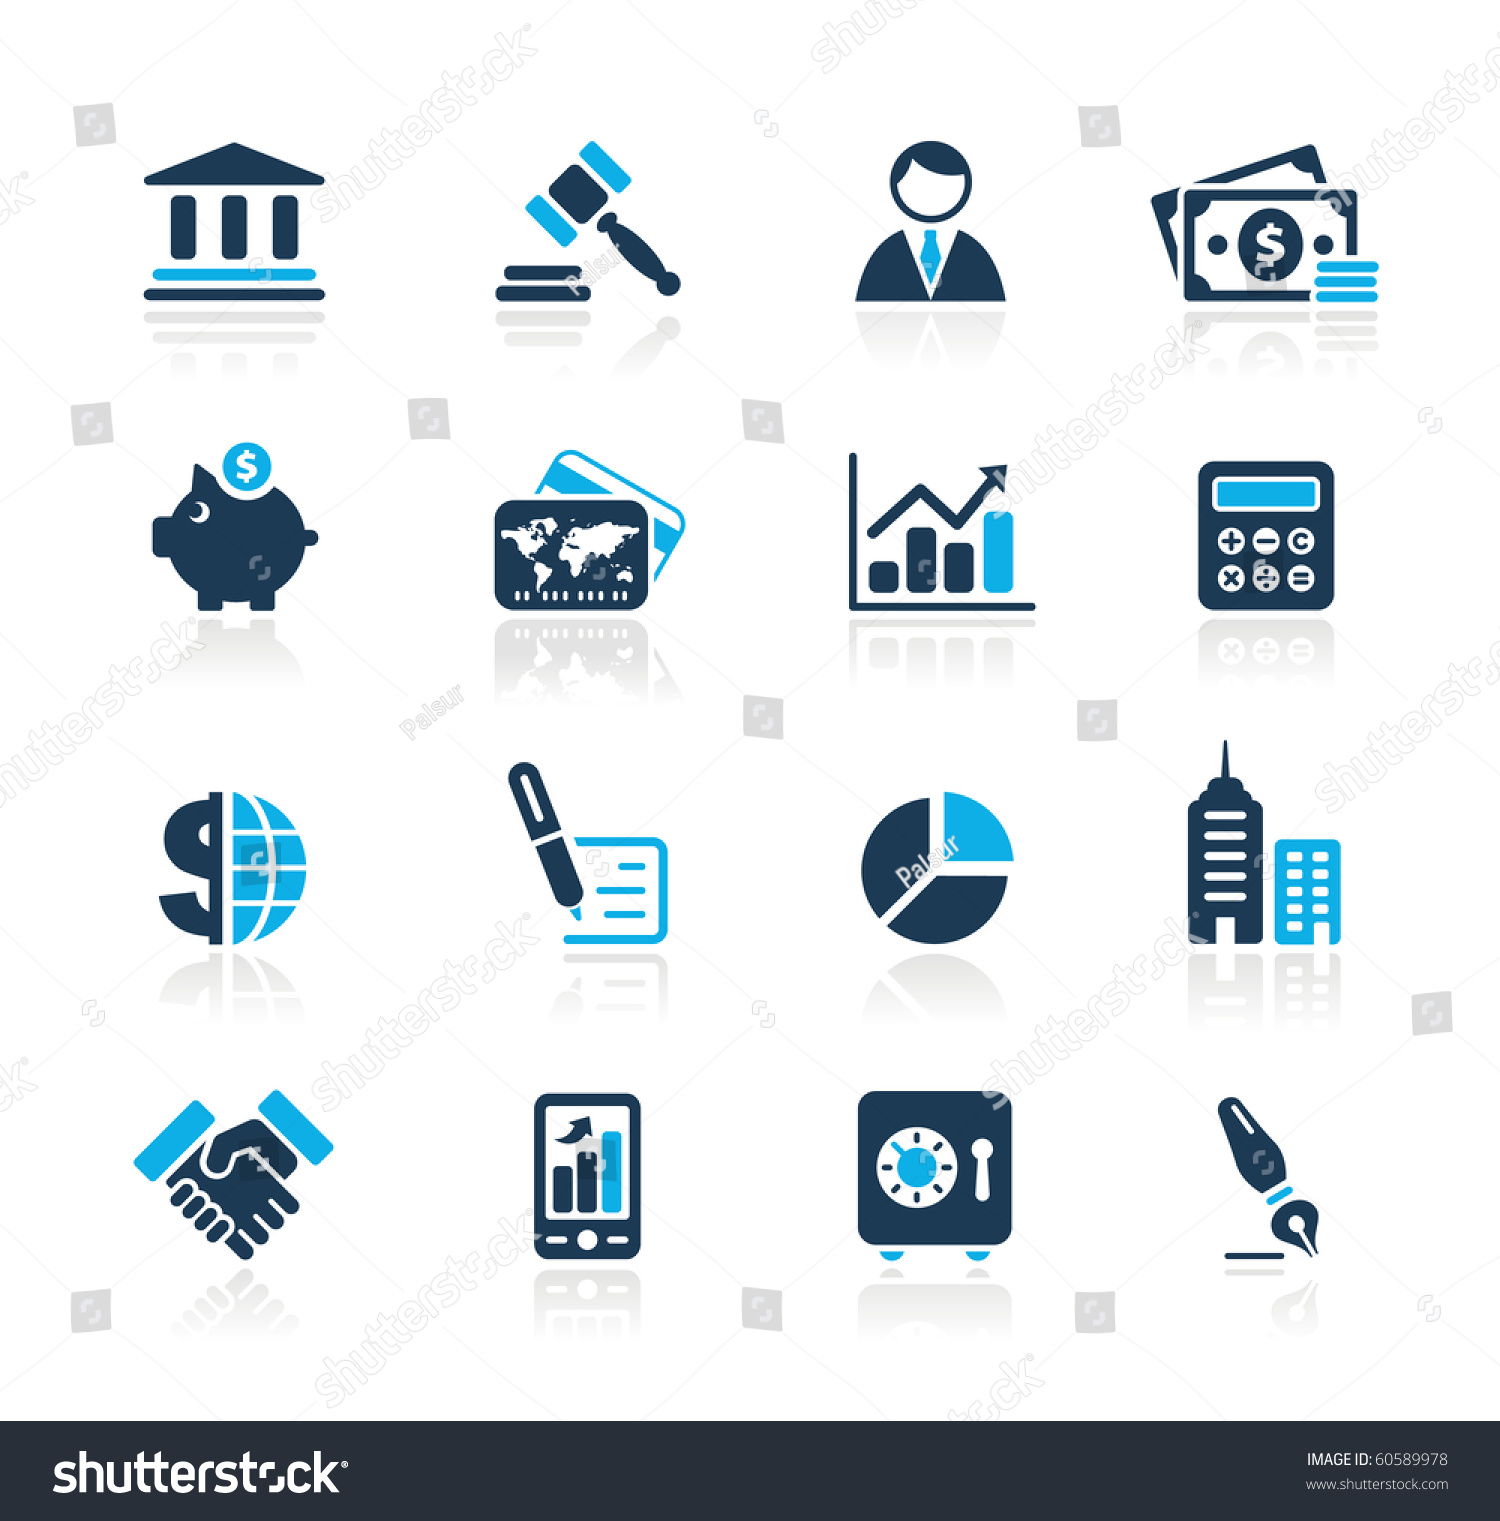 Business Finance: Business Finance Web Icons Azure Series Stock Vector